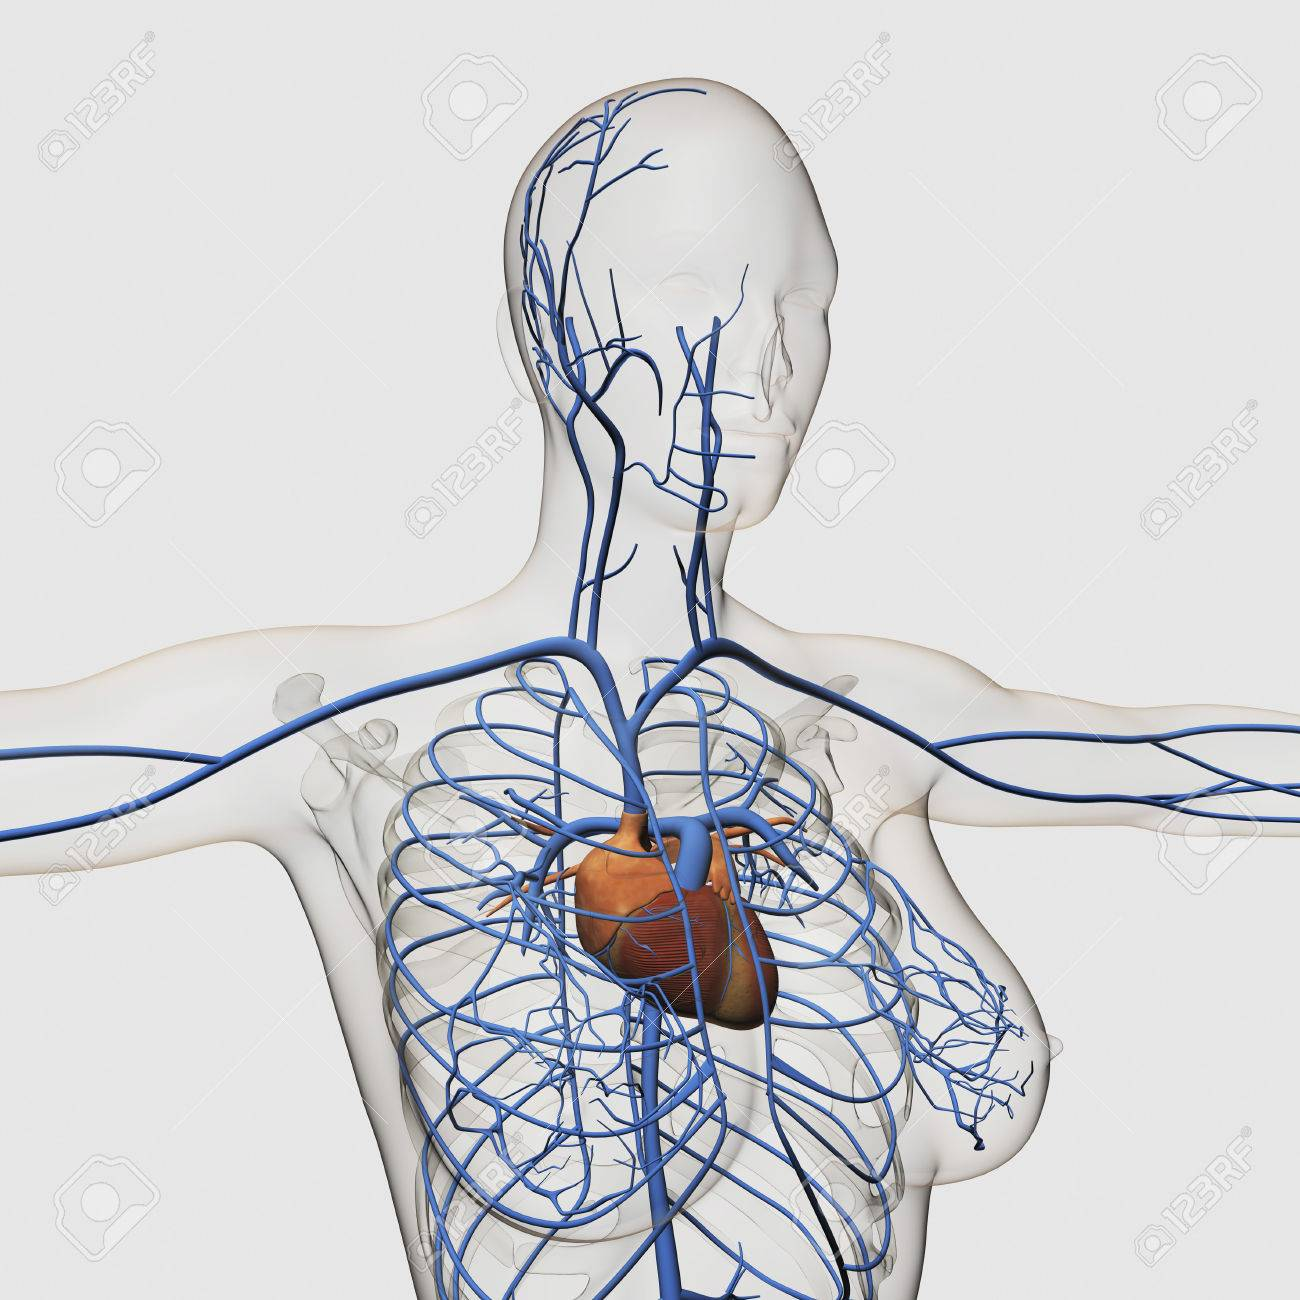 Medical Illustration Of Circulatory System With Heart And Veins ...